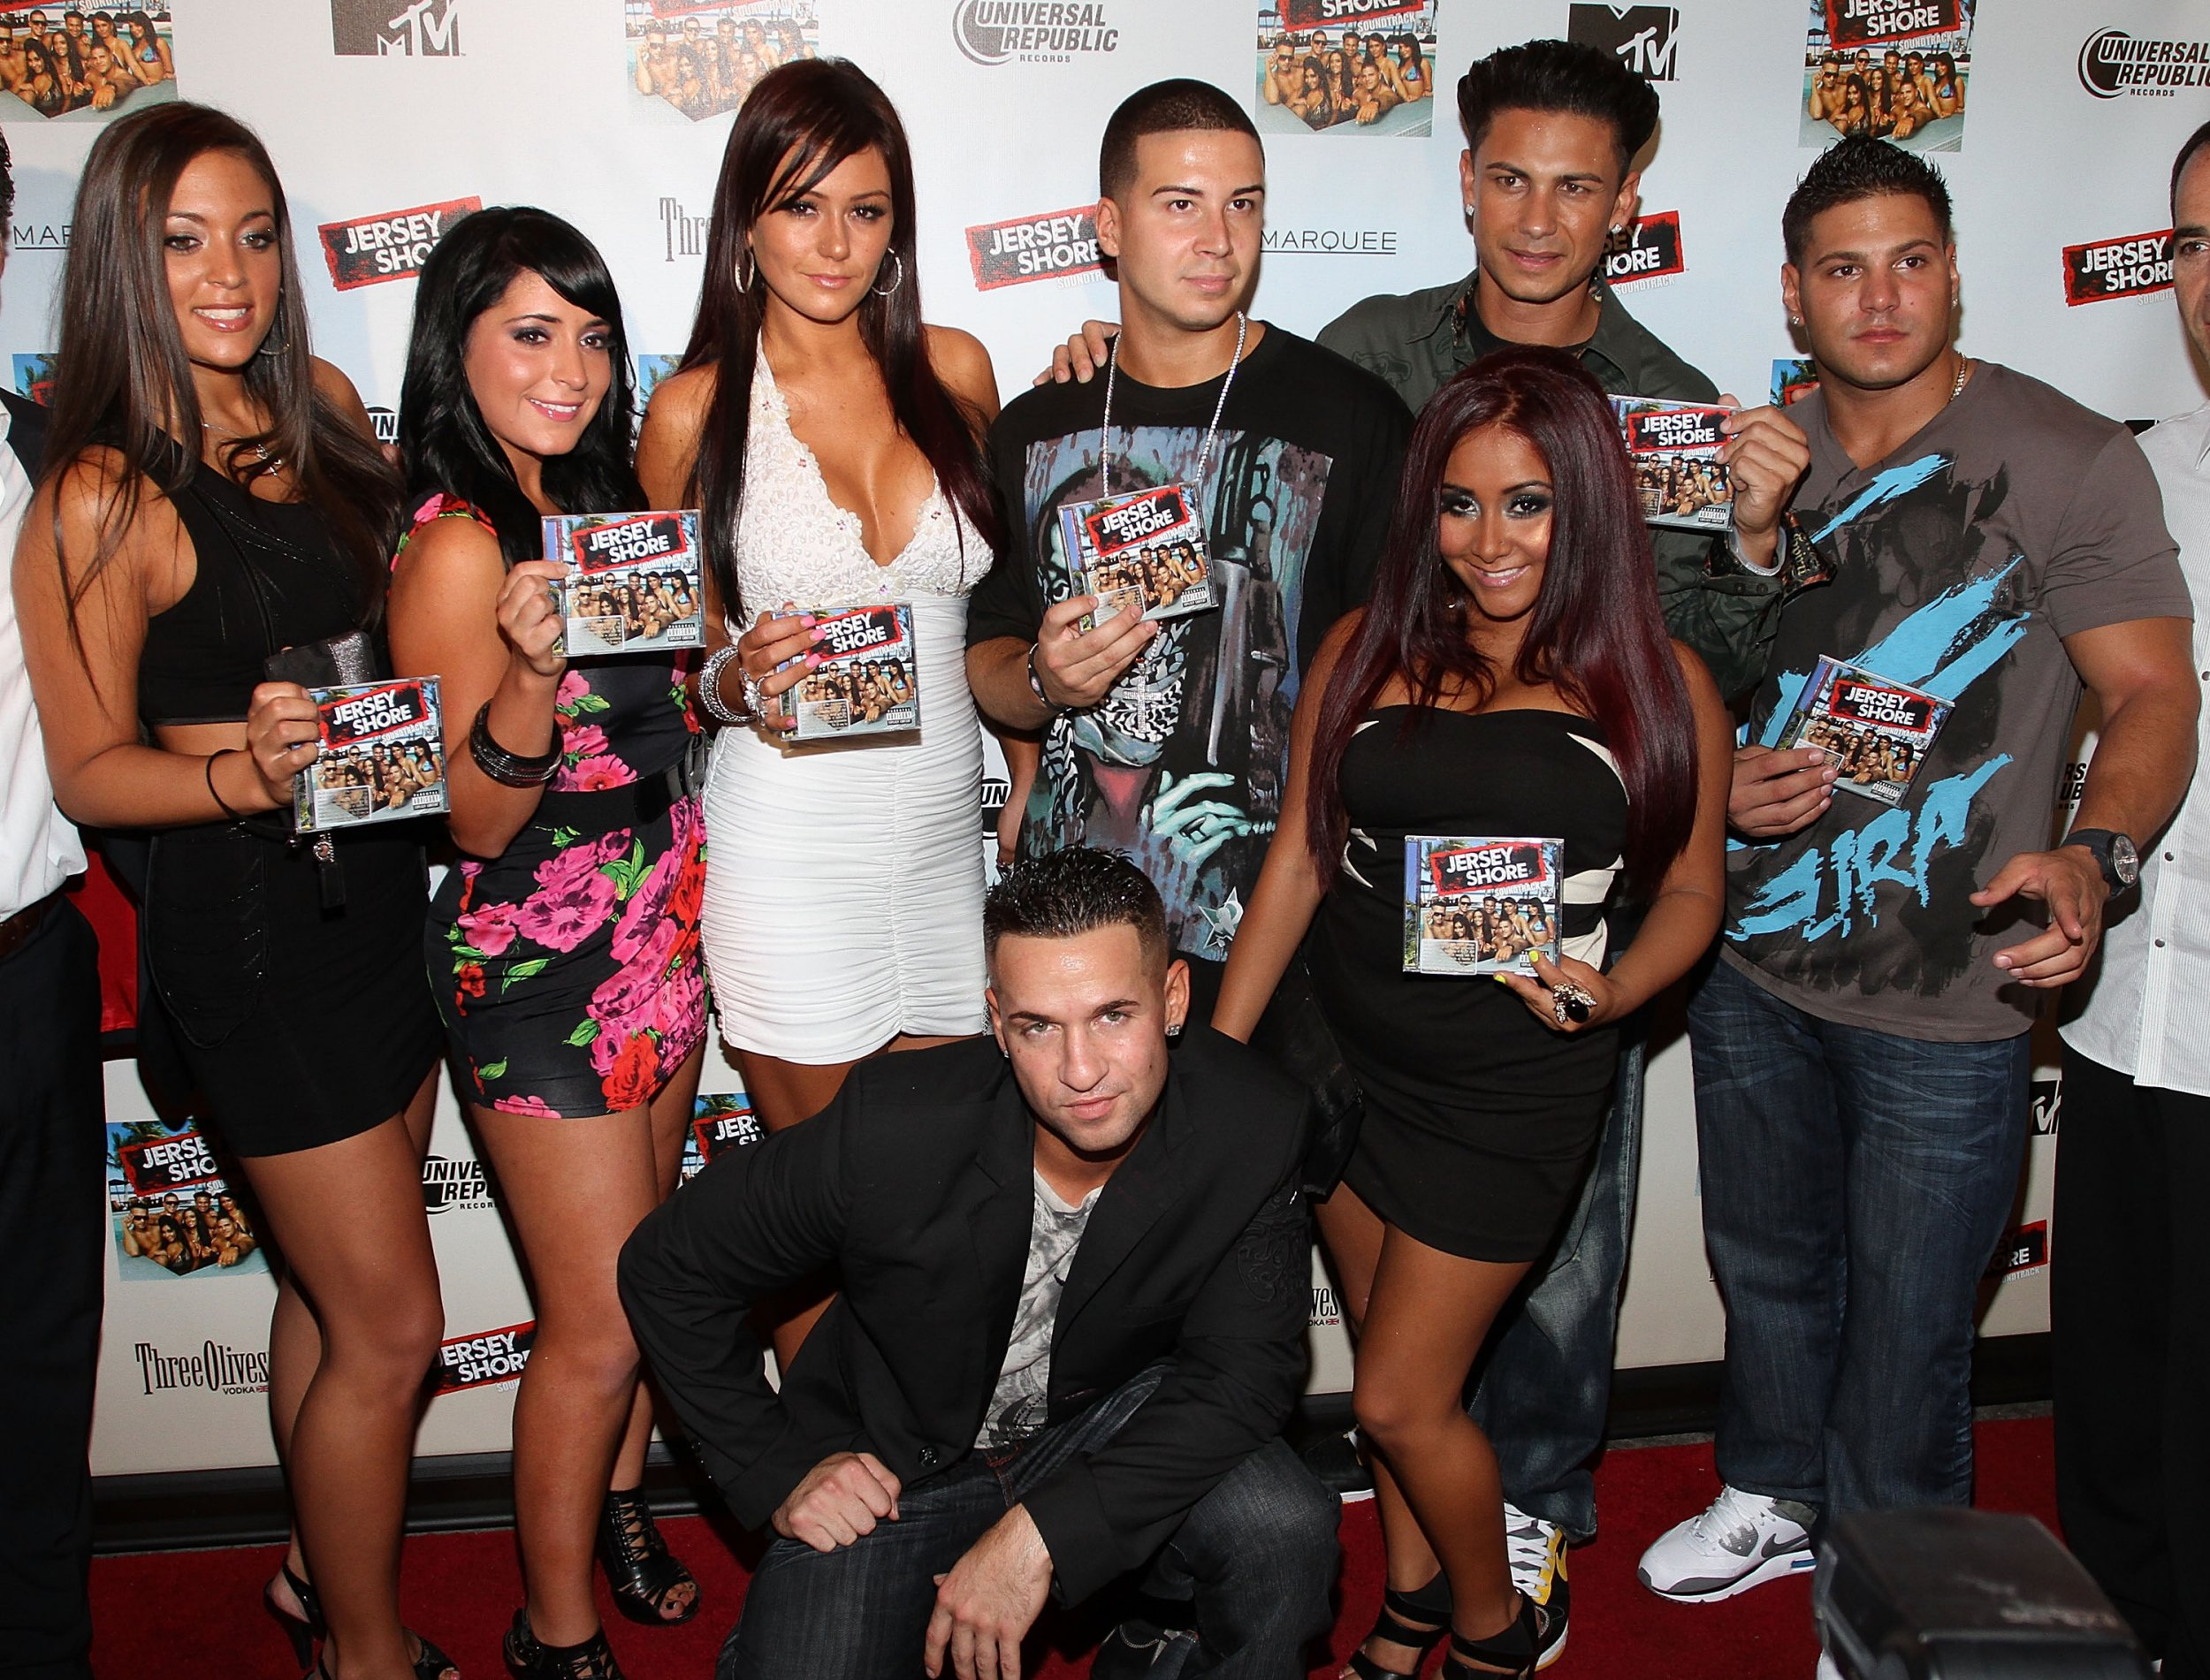 Jersey Shore cast are reuniting for a special 'documentary' in August